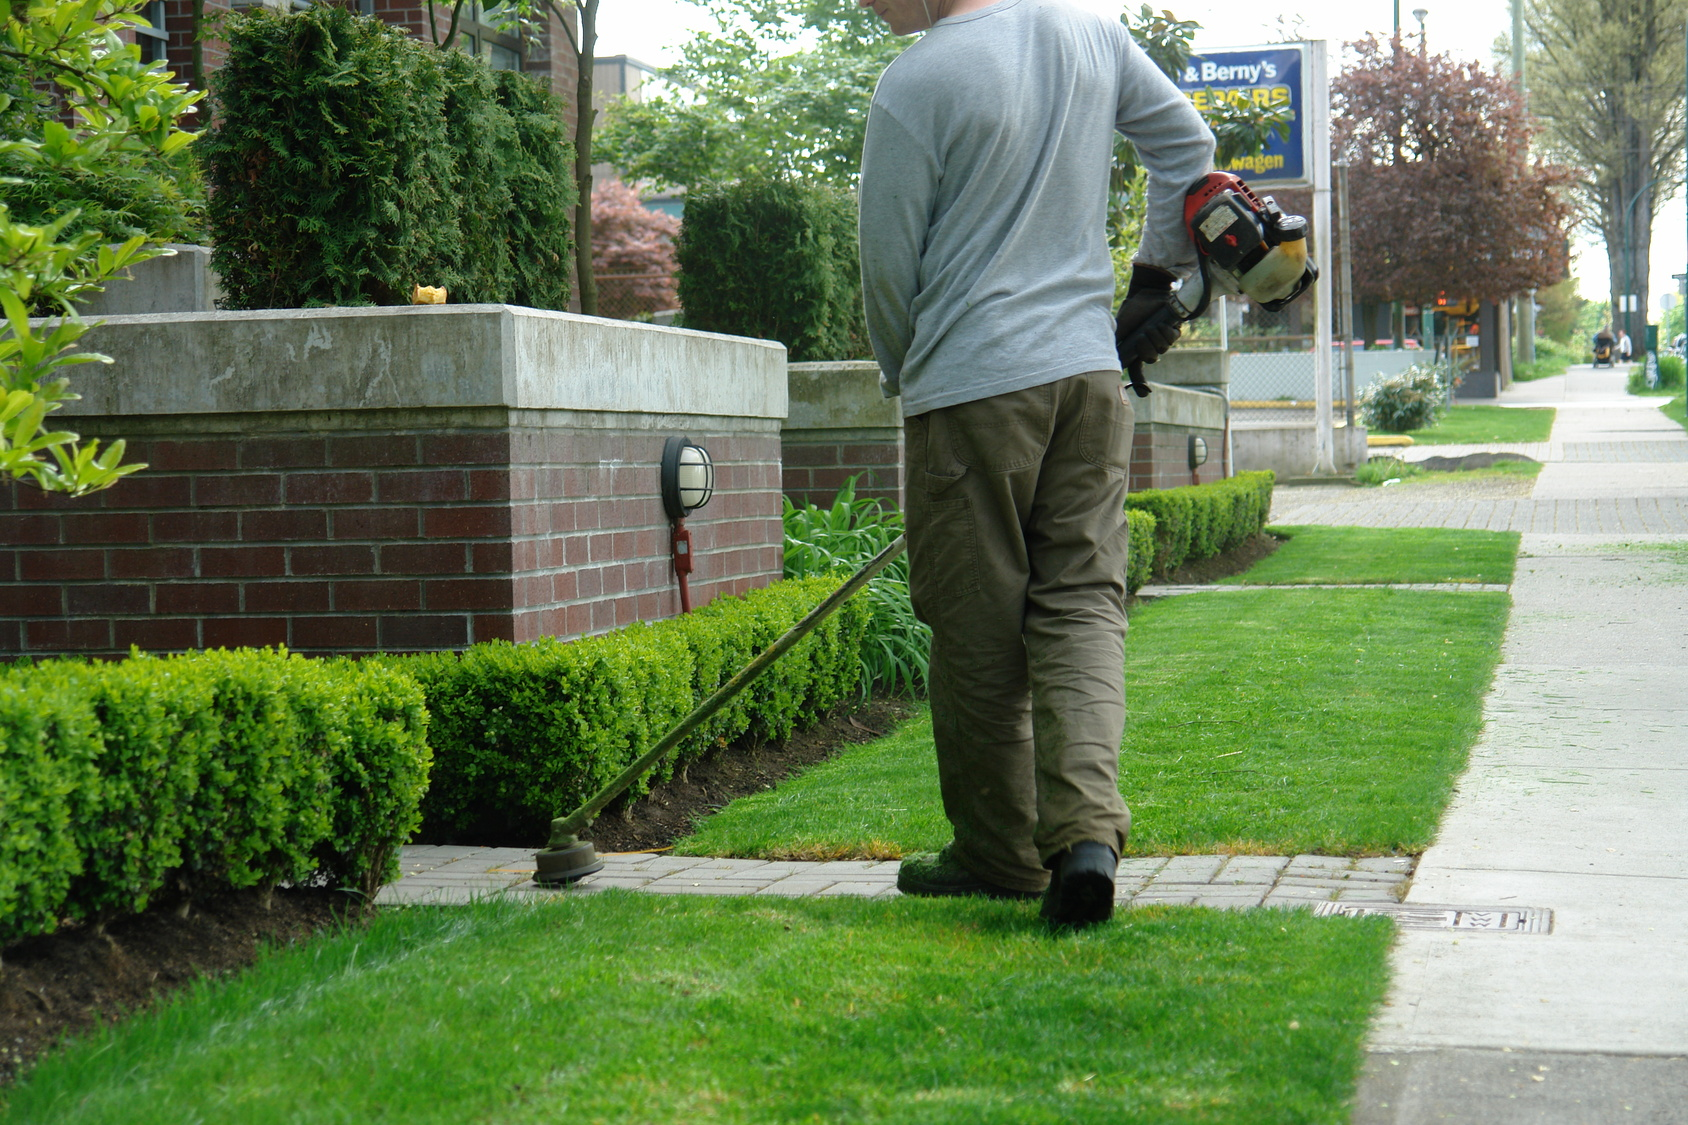 Lawn yard maintenance services lake country kelowna for Lawn and garden services